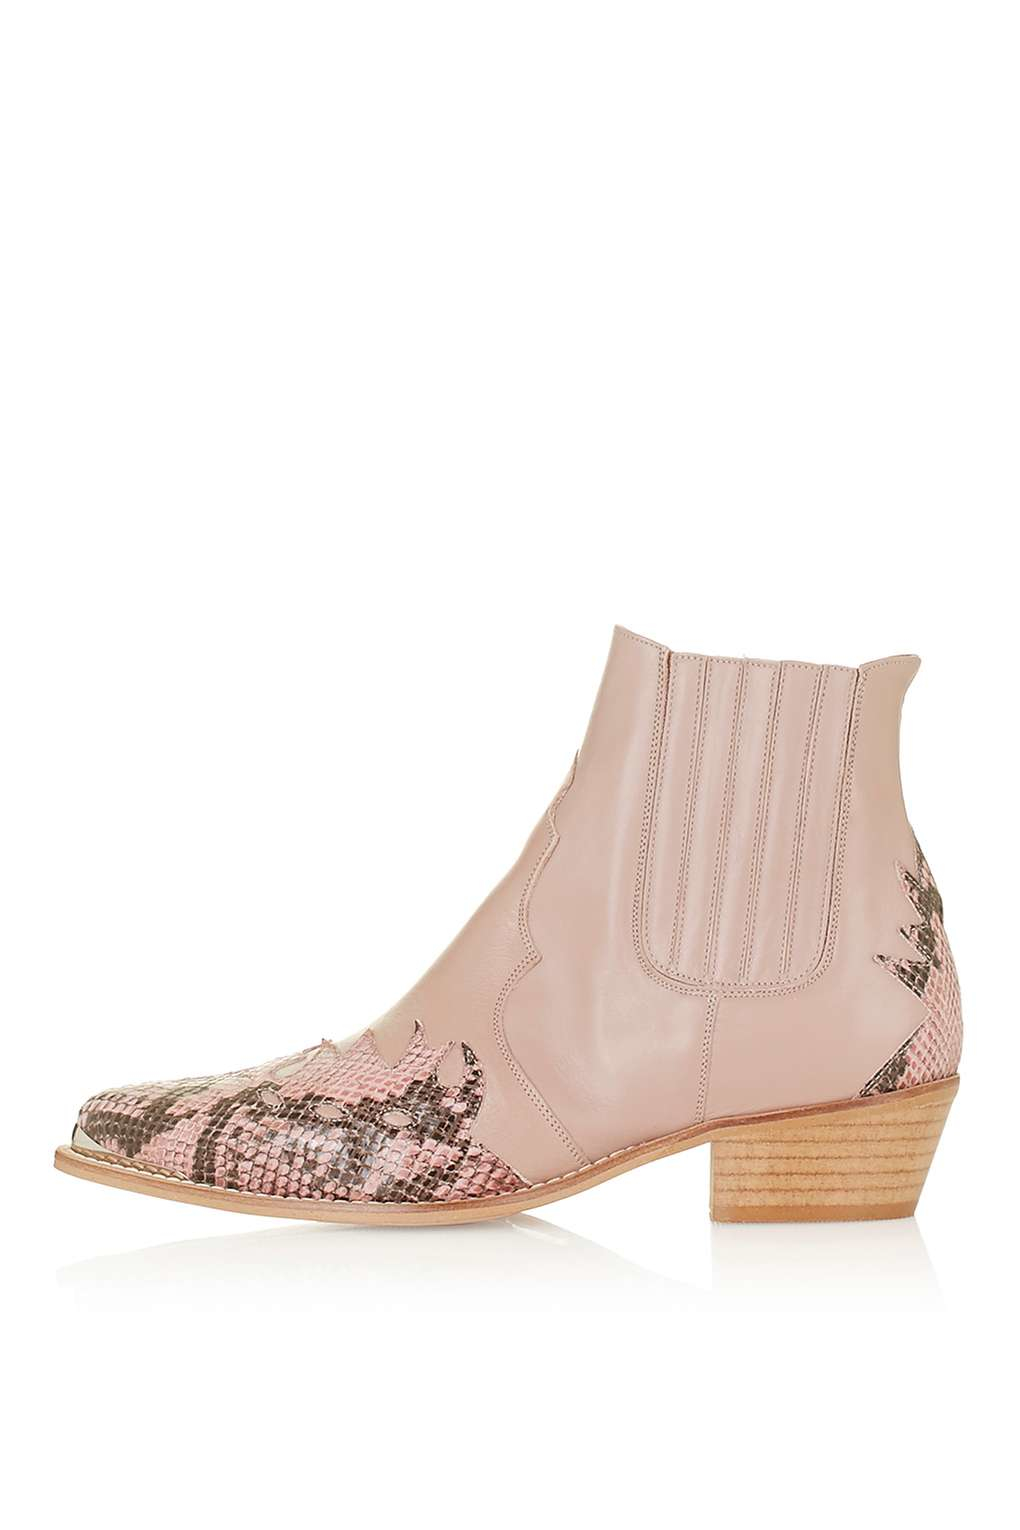 topshop arson western ankle boots in beige lyst